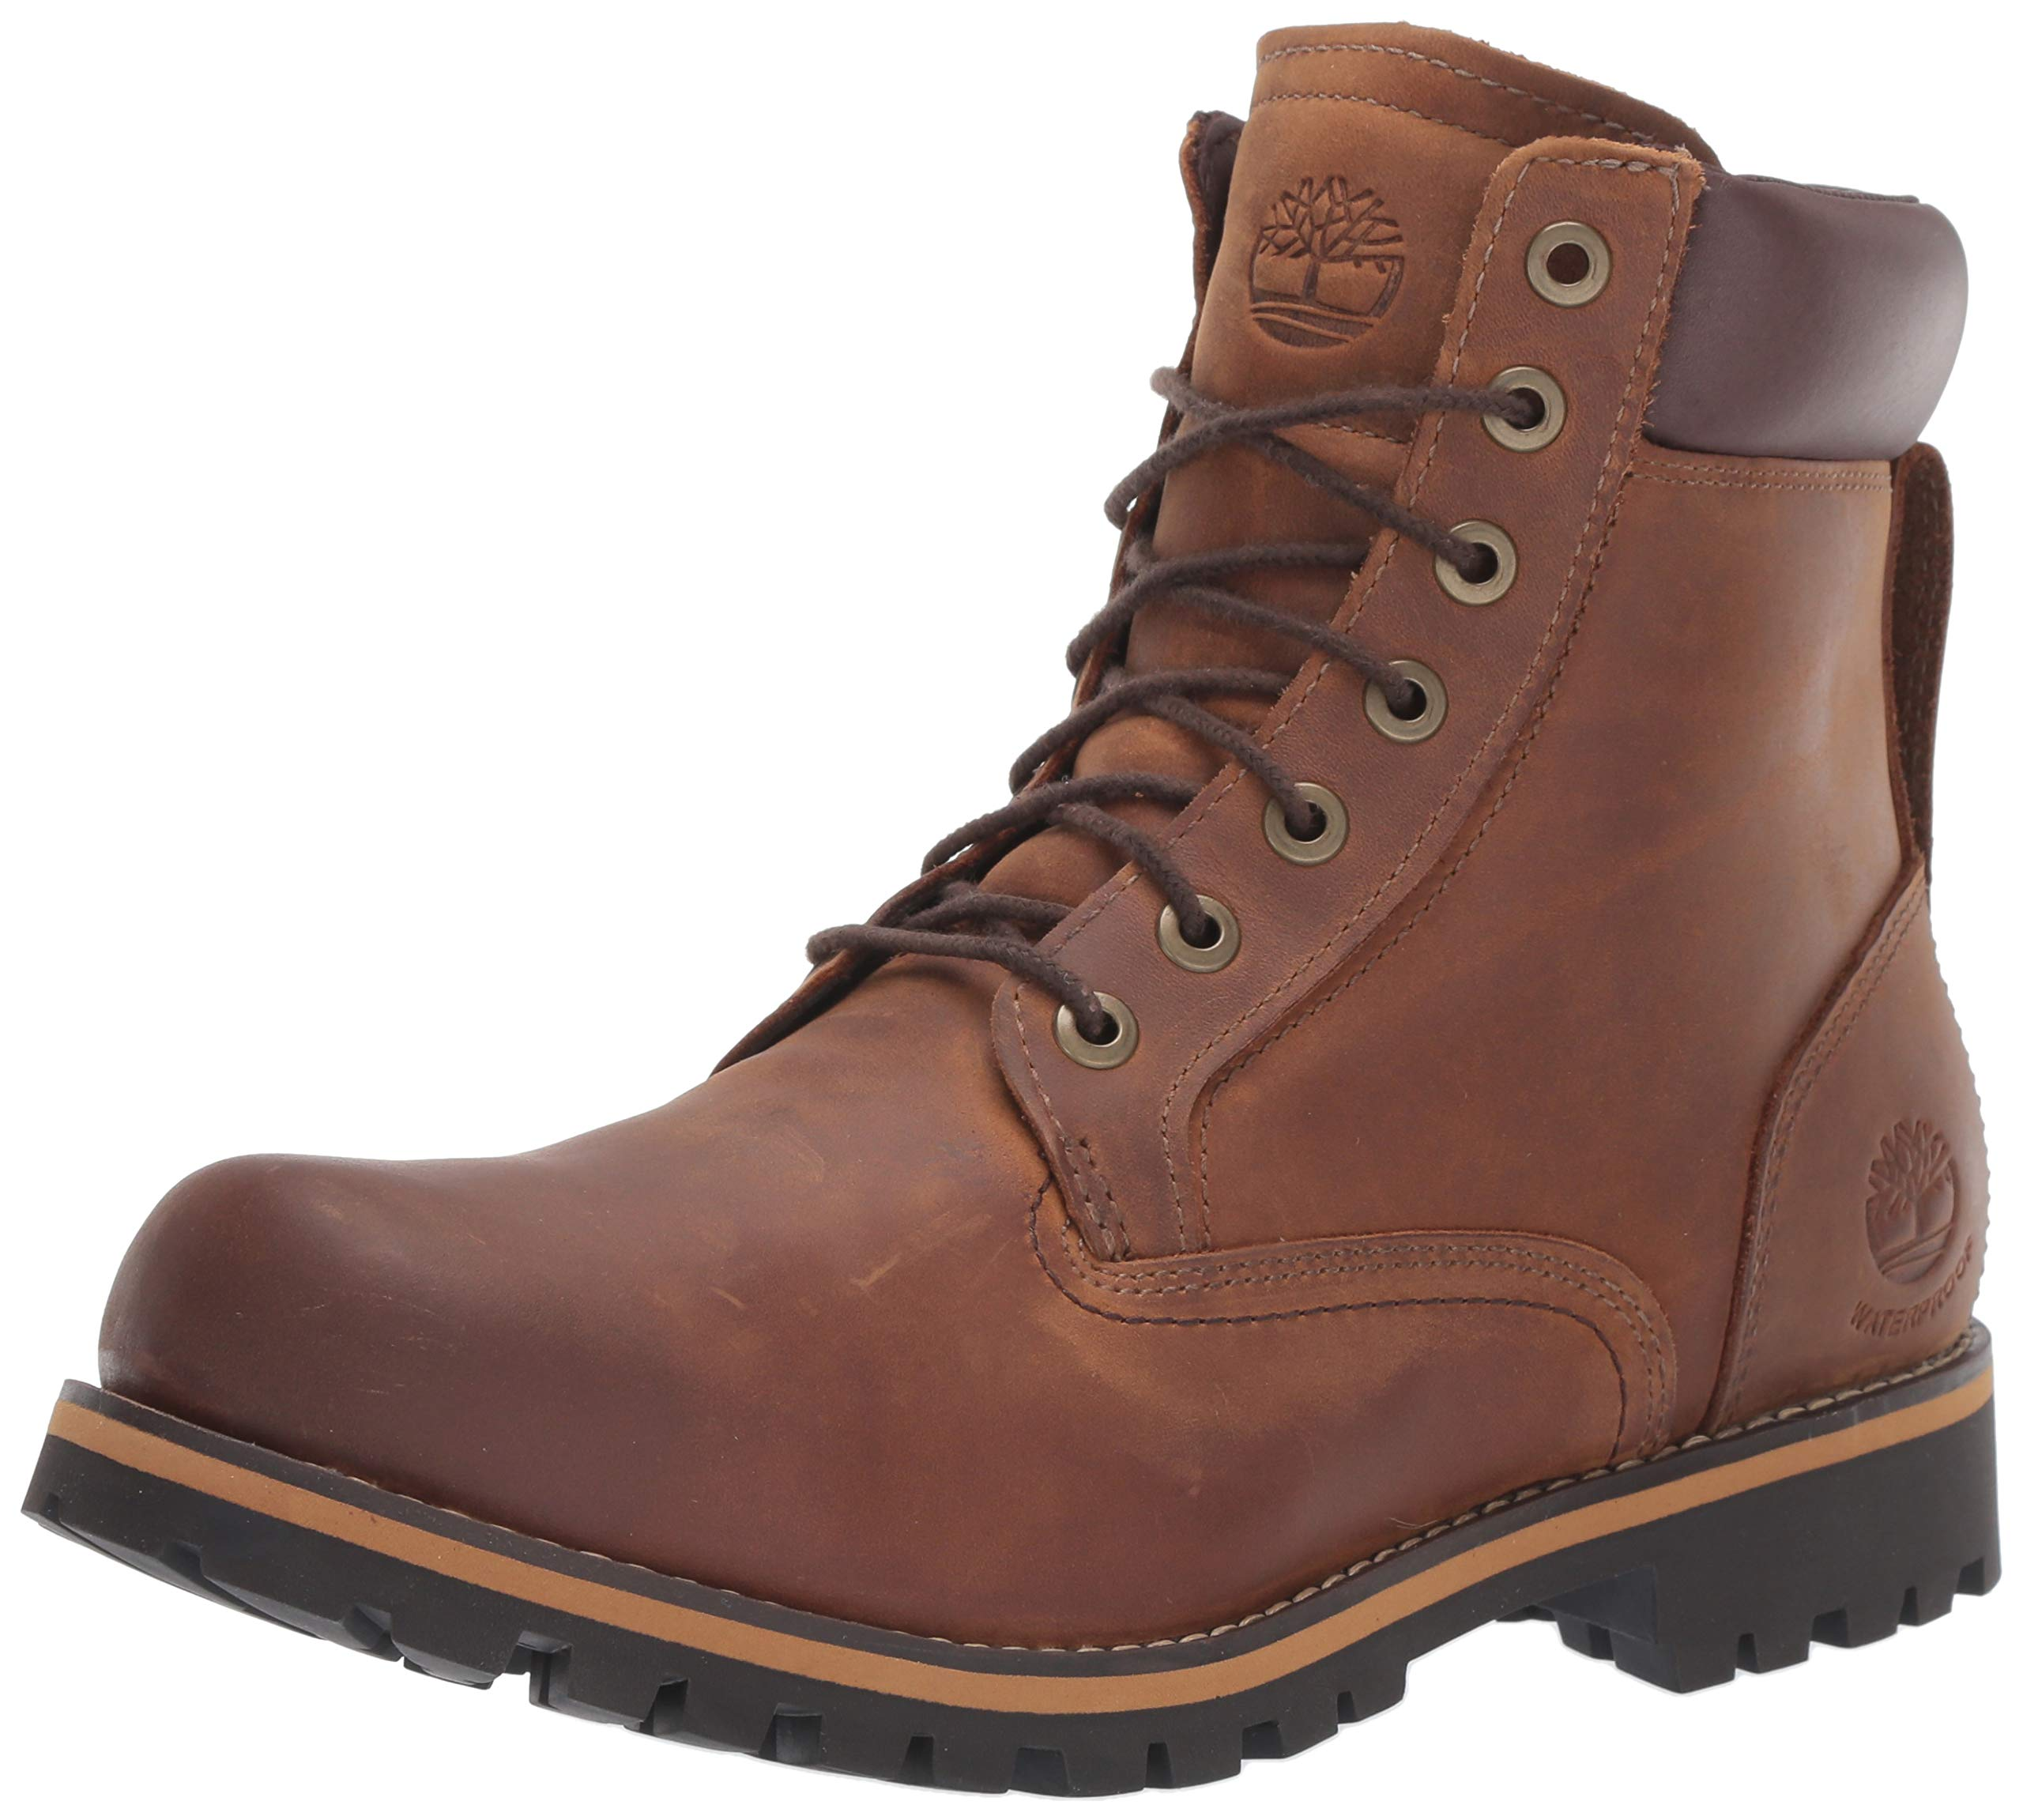 Timberland Men's Earthkeepers Rugged Boot, Medium brown full grain, 8.5 M US